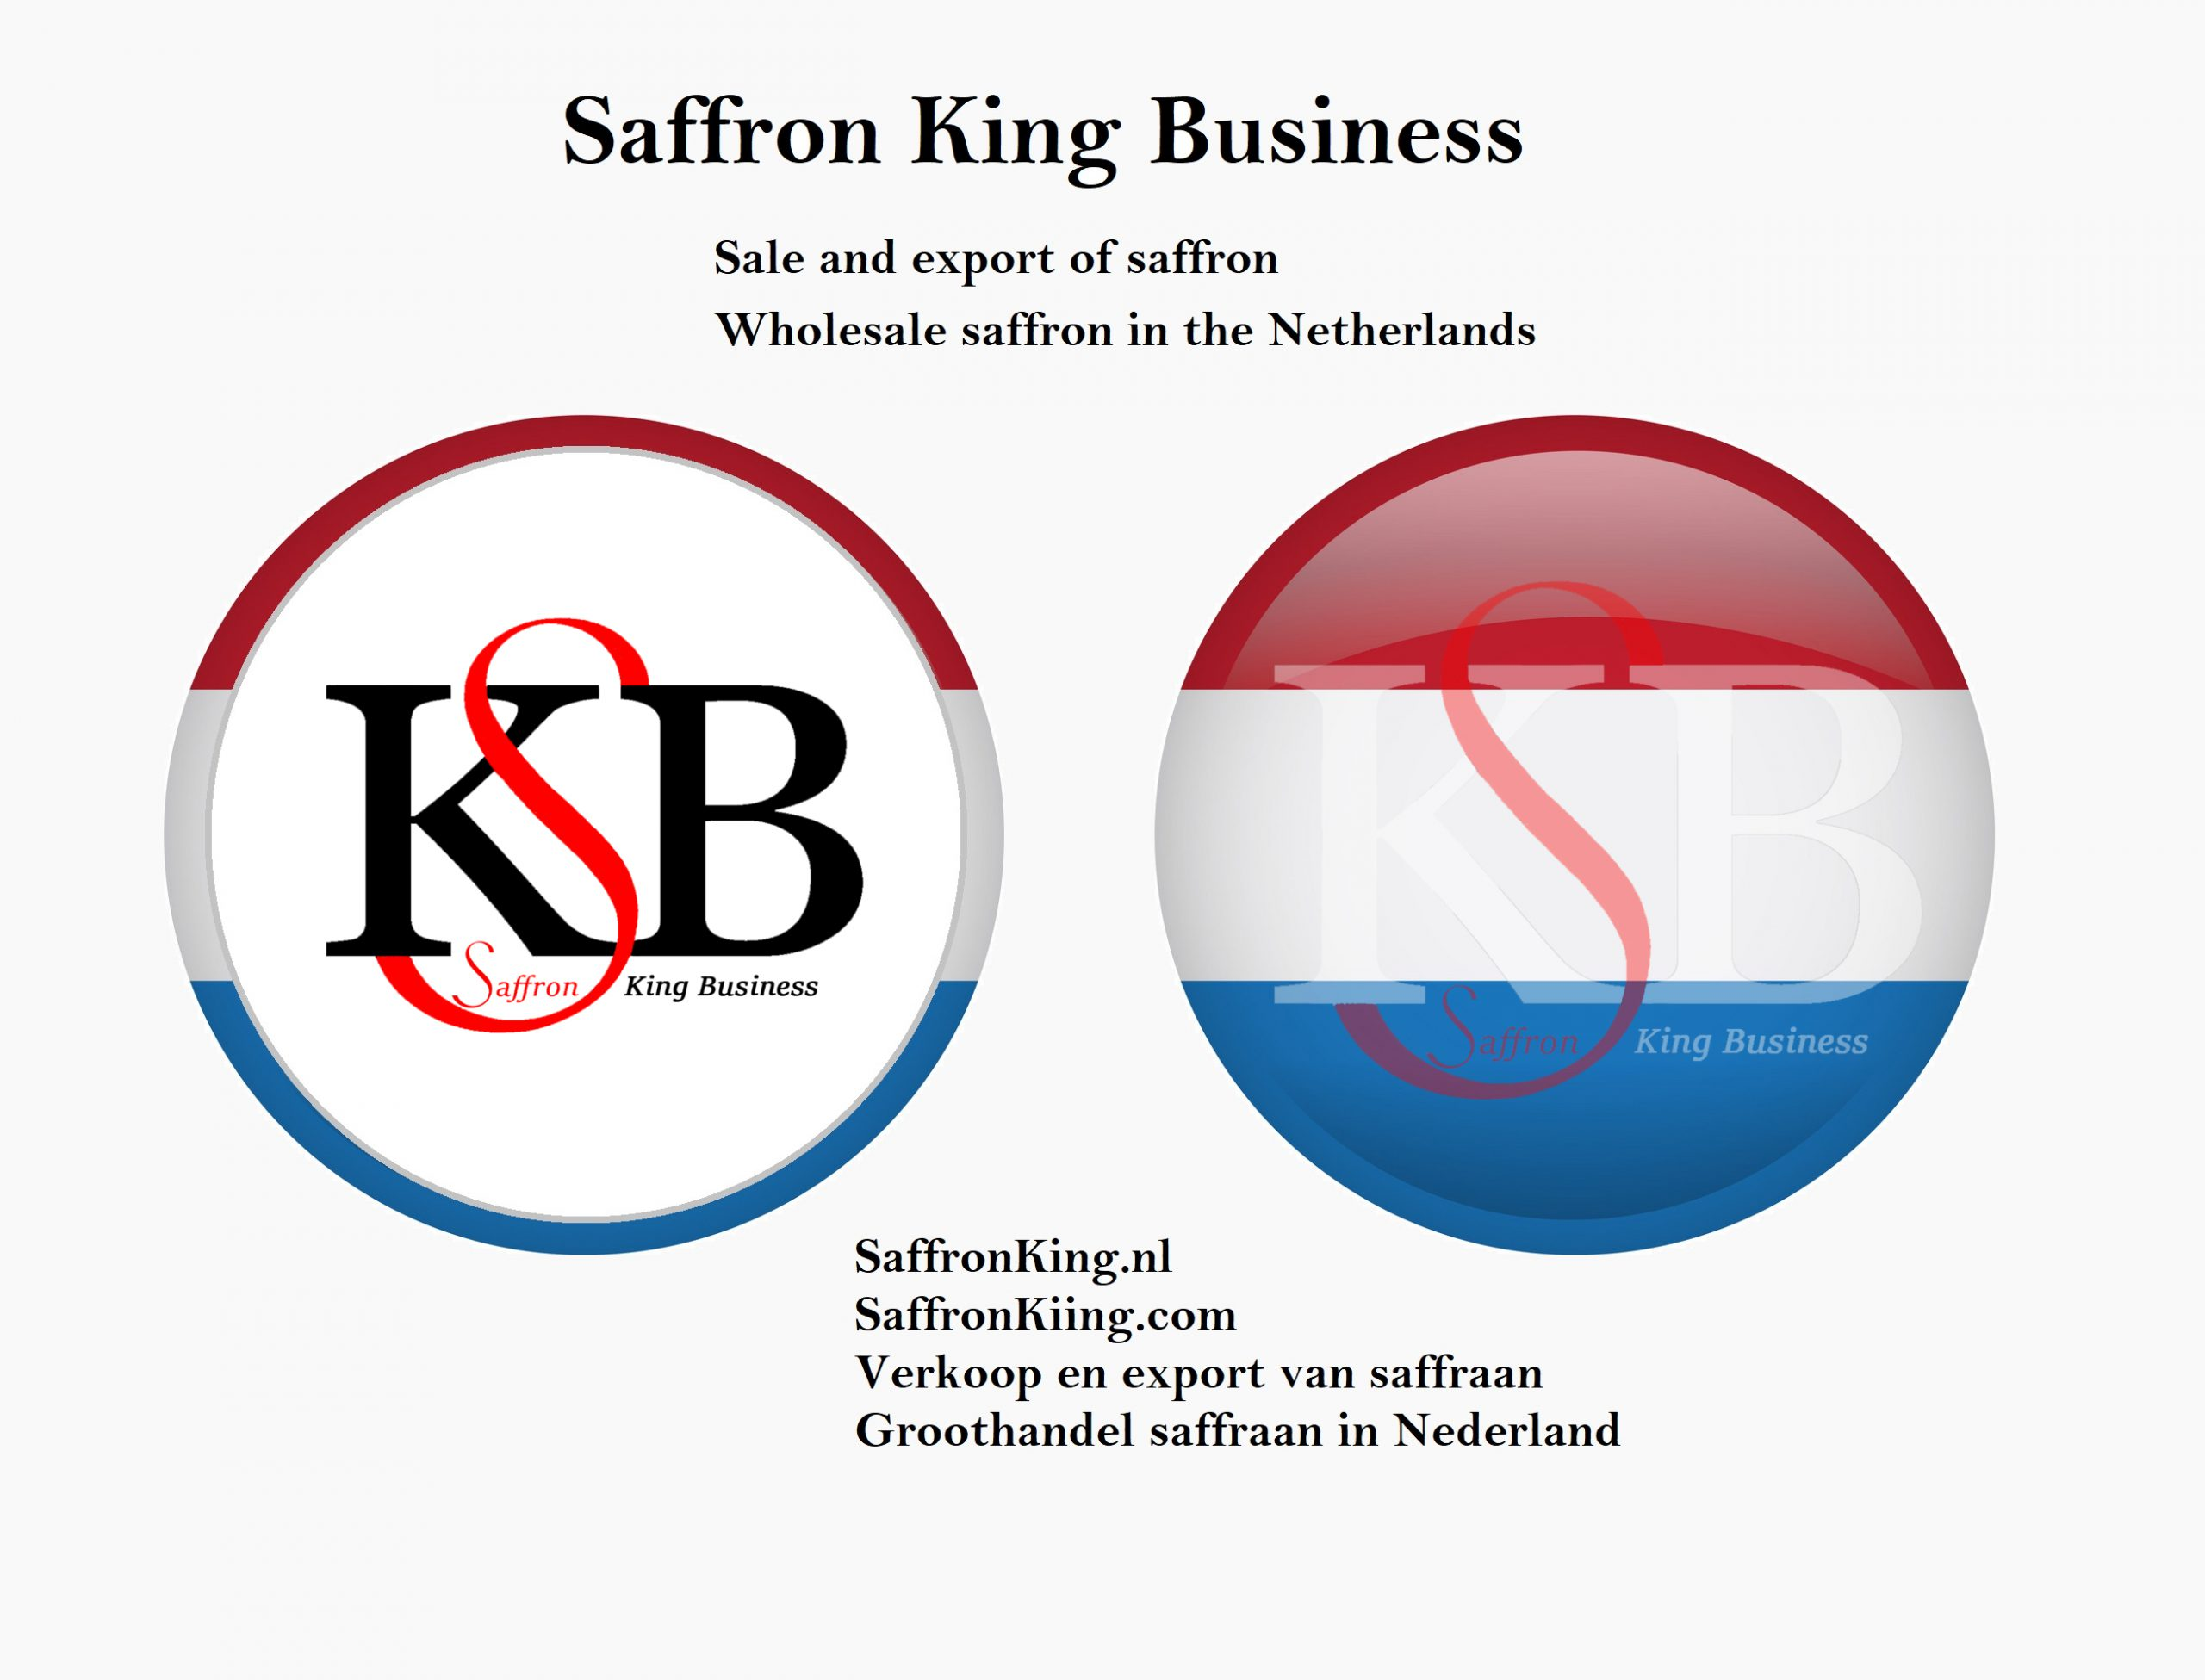 Purchase price of saffron in the Netherlands